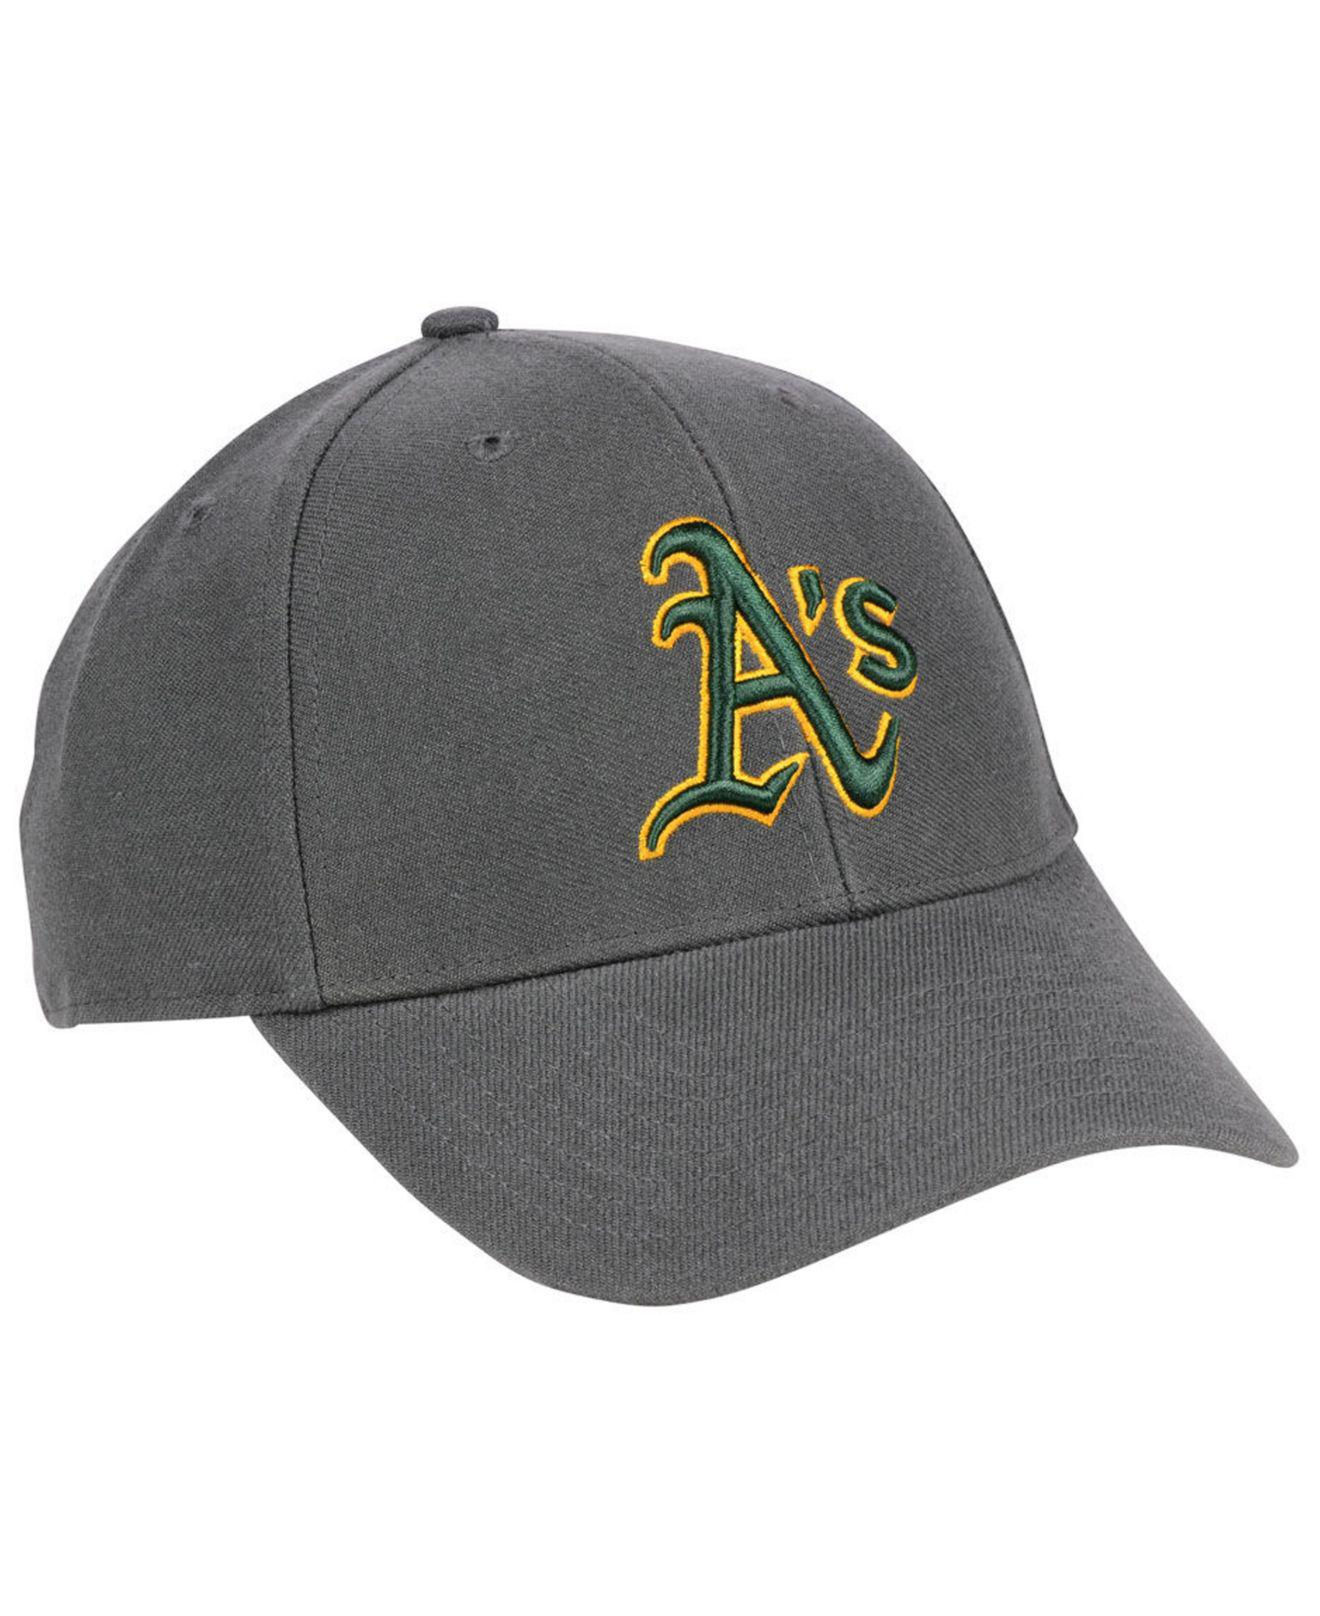 brand new aba96 af983 ... discount closeout lyst 47 brand oakland athletics charcoal mvp cap in  gray for men b5e38 7ae9a